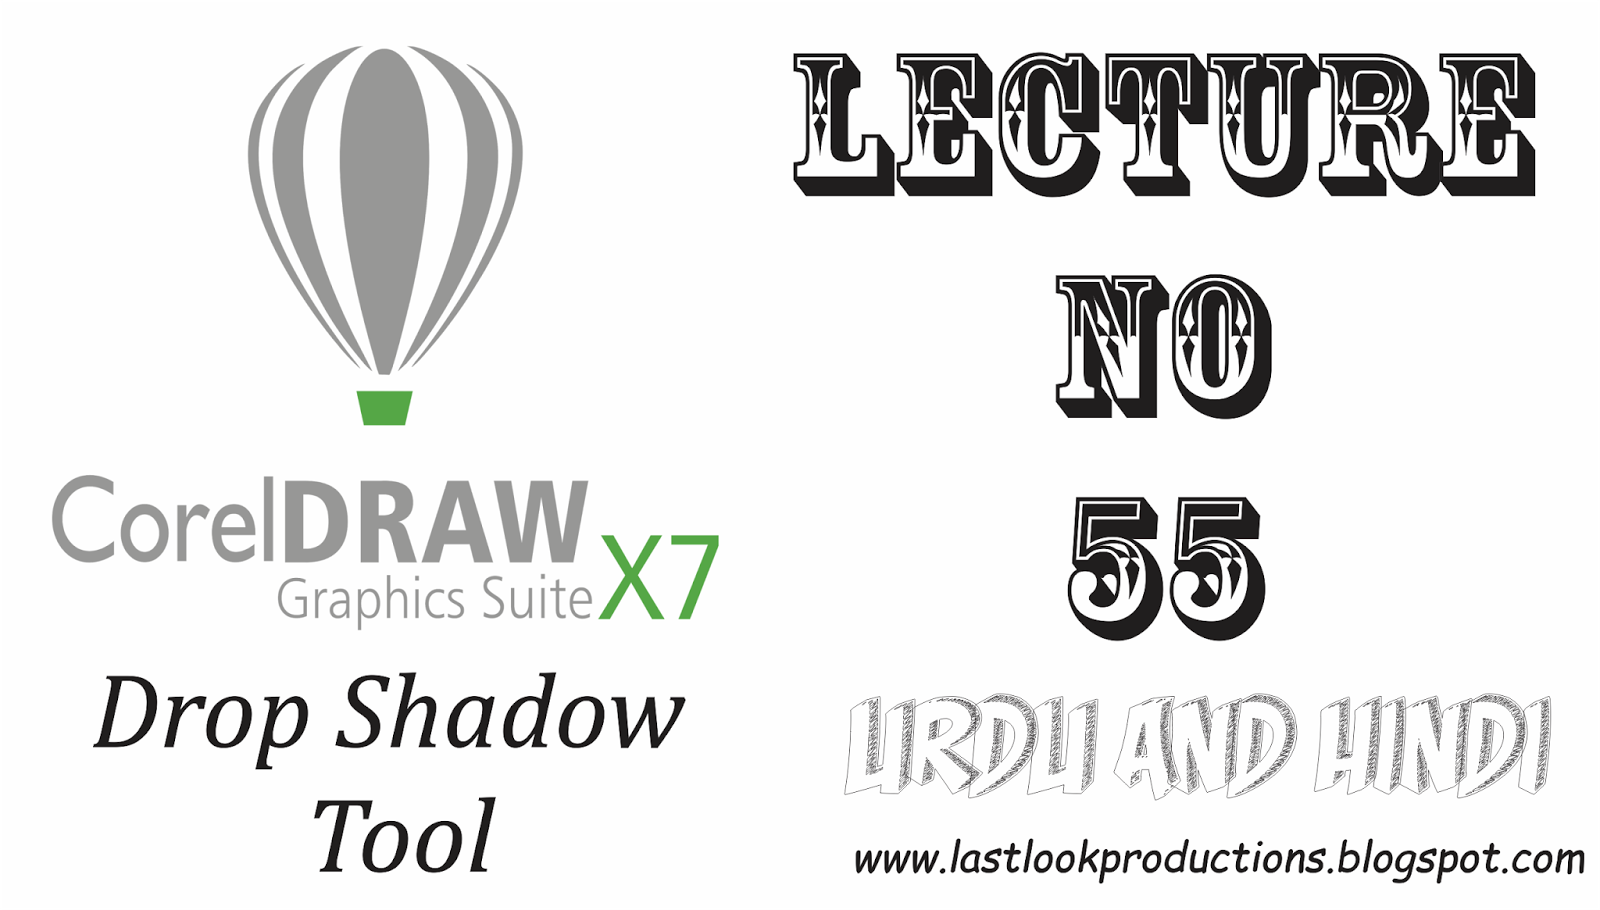 """CorelDRAW Graphic Suit X7 - """"Drop Shadow Tool"""" - Lecture"""